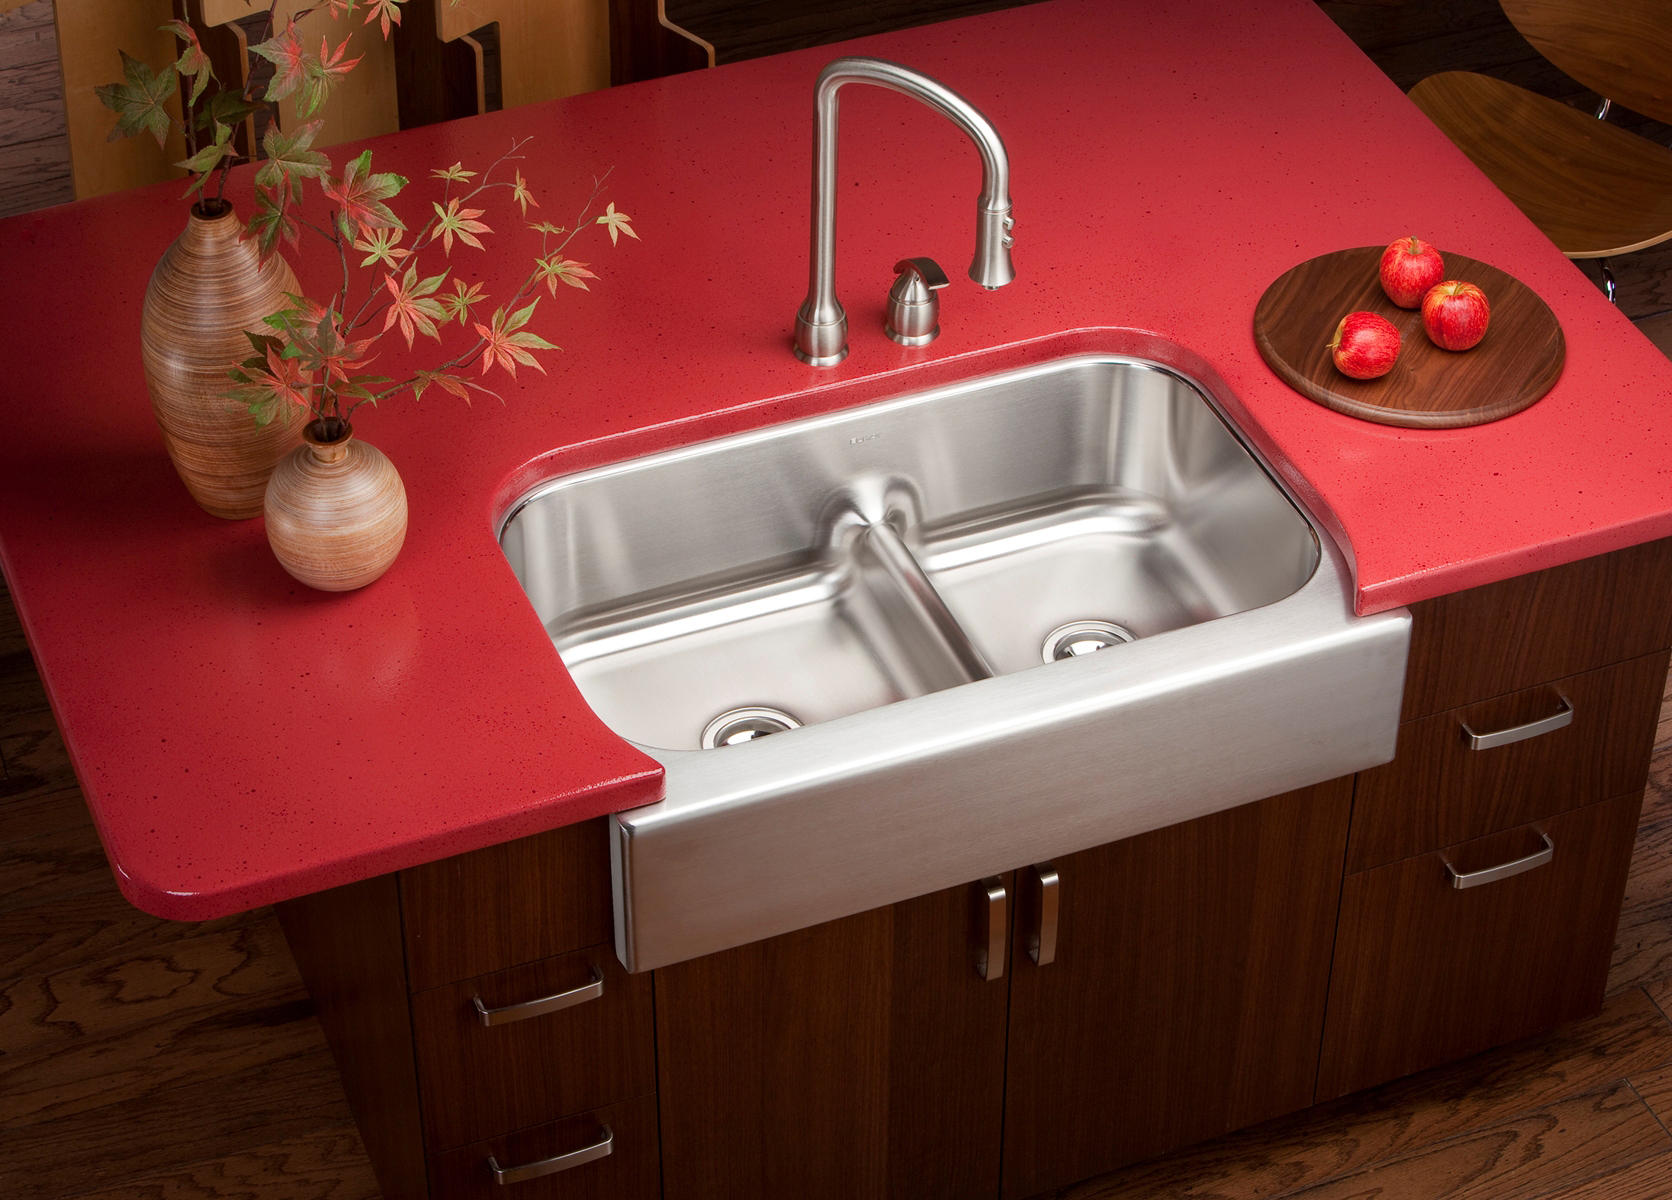 Lovely Elkay E Granite Kitchen Sinks - Taste